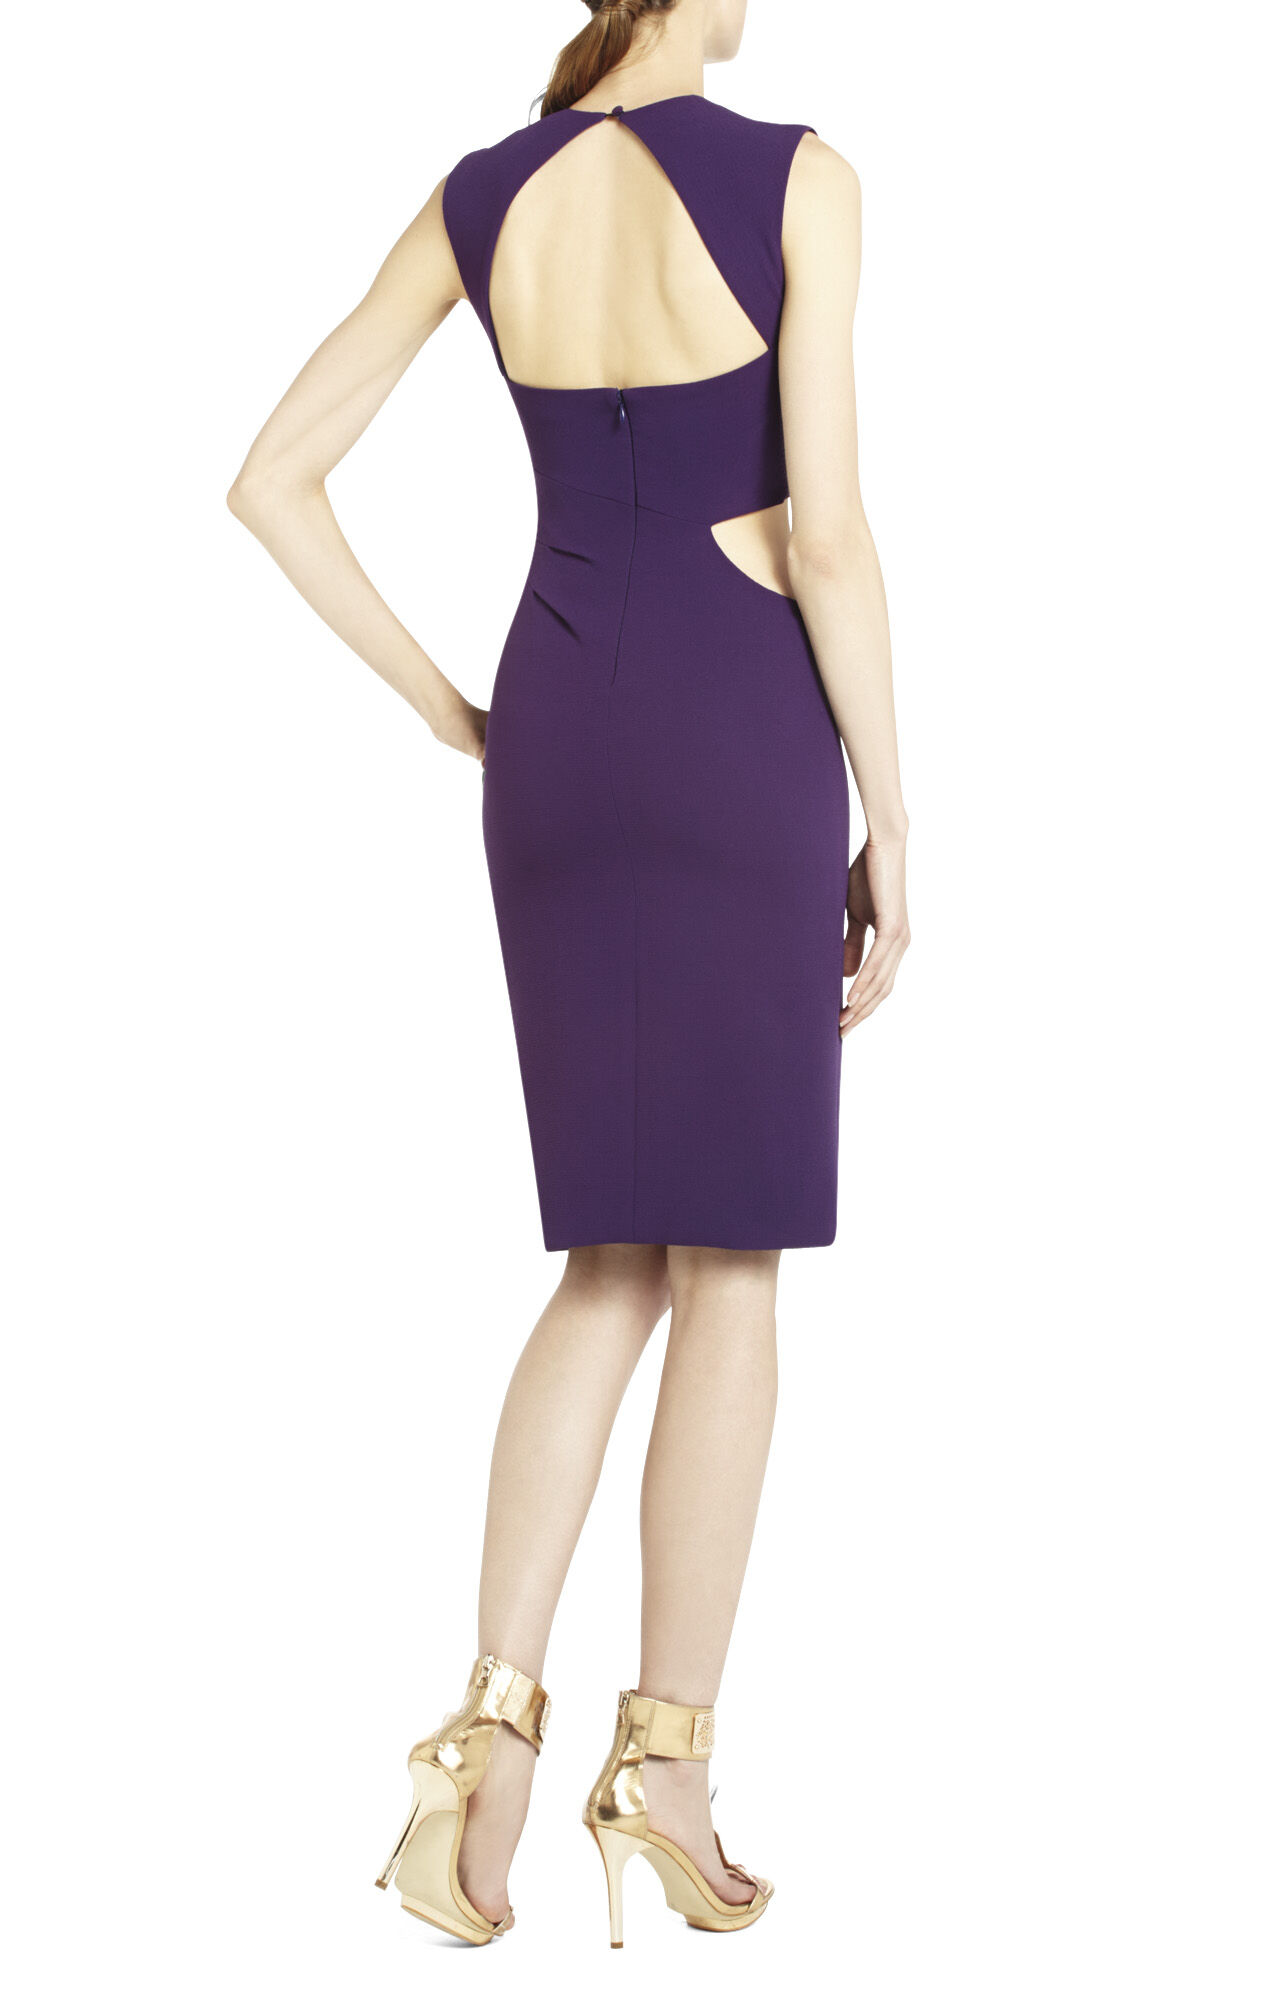 Laura Sleeveless Cutout Dress